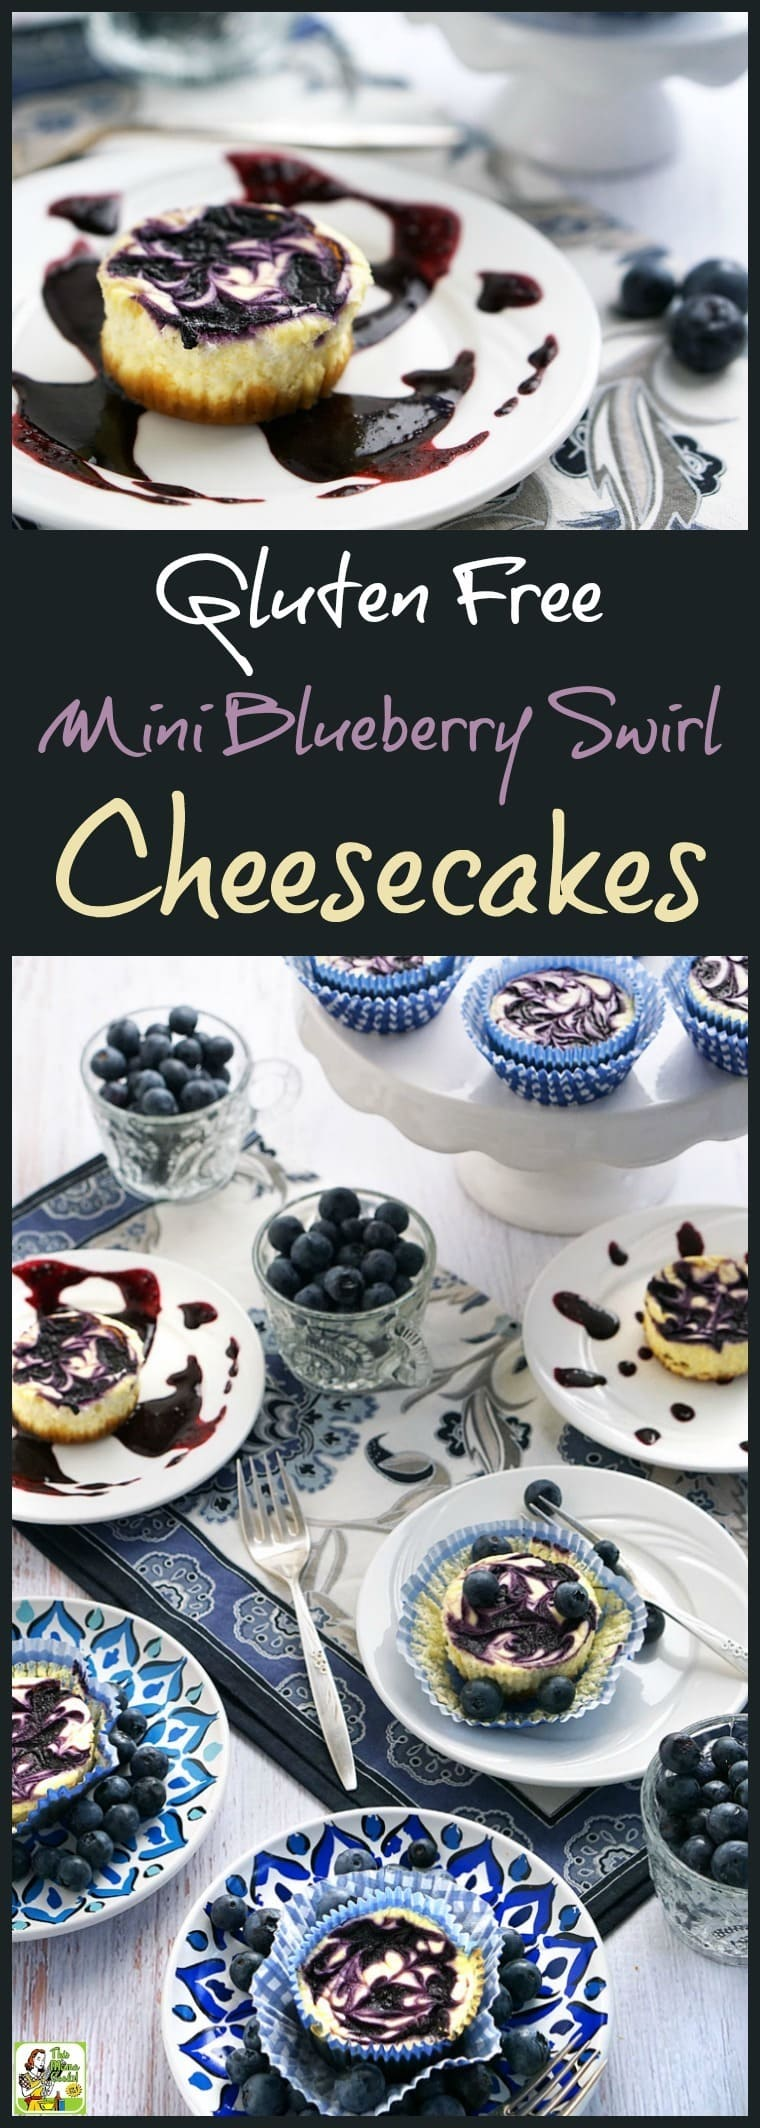 Looking for a gluten free dessert recipe that's also low in sugar and fat. Try this easy to make Gluten Free Mini Blueberry Swirl Cheesecakes recipe! It's a guilt free dessert recipe because these mini cheesecake cupcakes are made with non-fat Greek yogurt, low fat cream cheese, blueberries, and monk fruit natural sweetener.  It's the ideal gluten free dessert for summer parties!